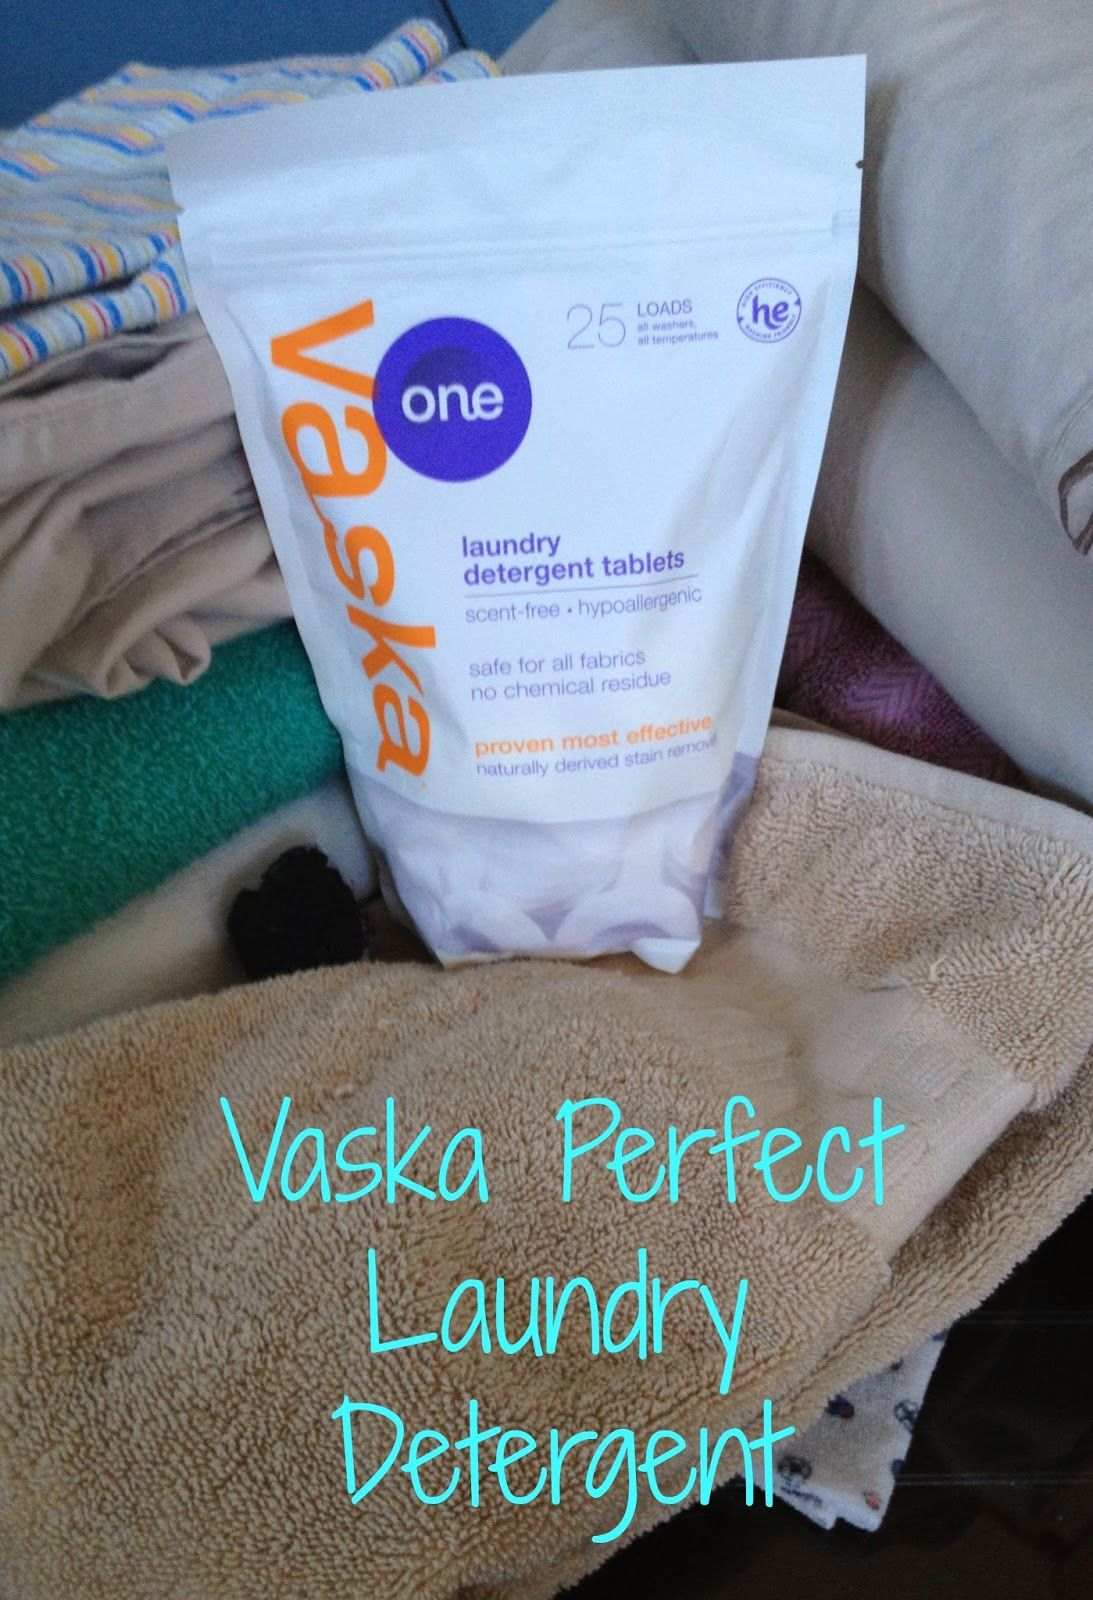 Vaska Perfect Laundry Detergent Safe And Sensitive For Your Family Giveaways